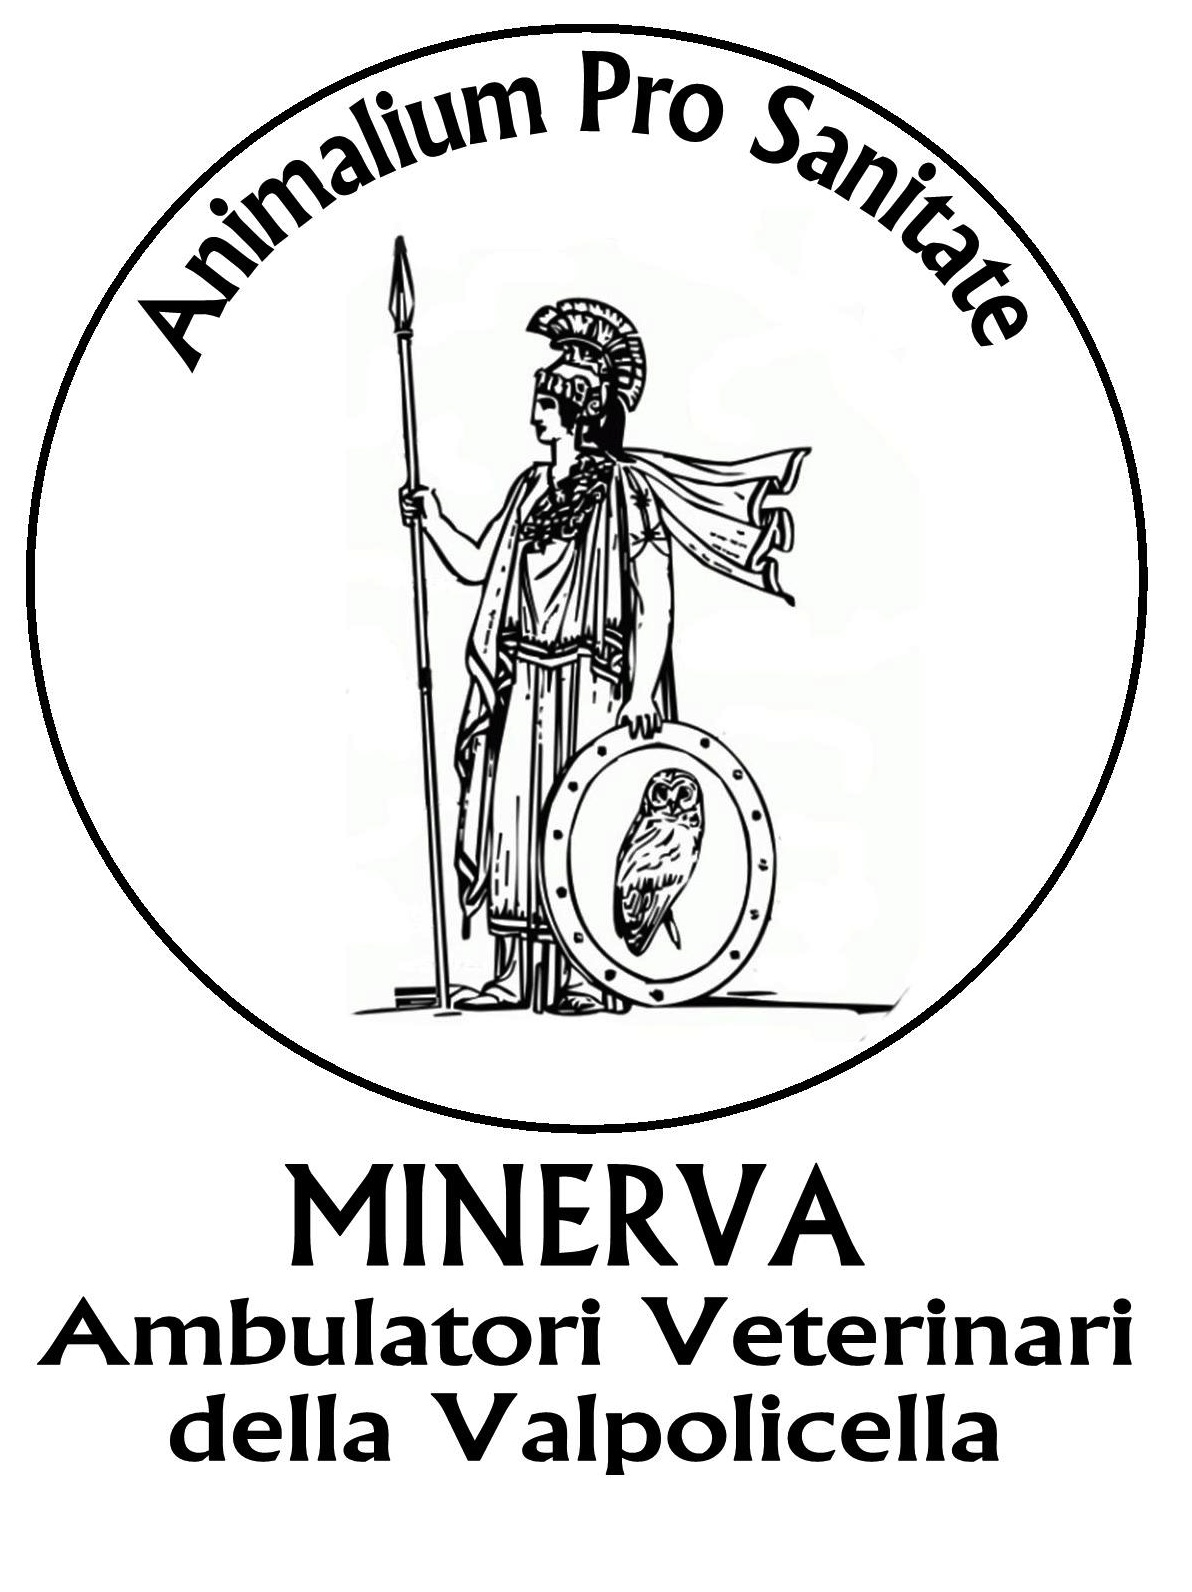 Ambulatori Veterinari Minerva